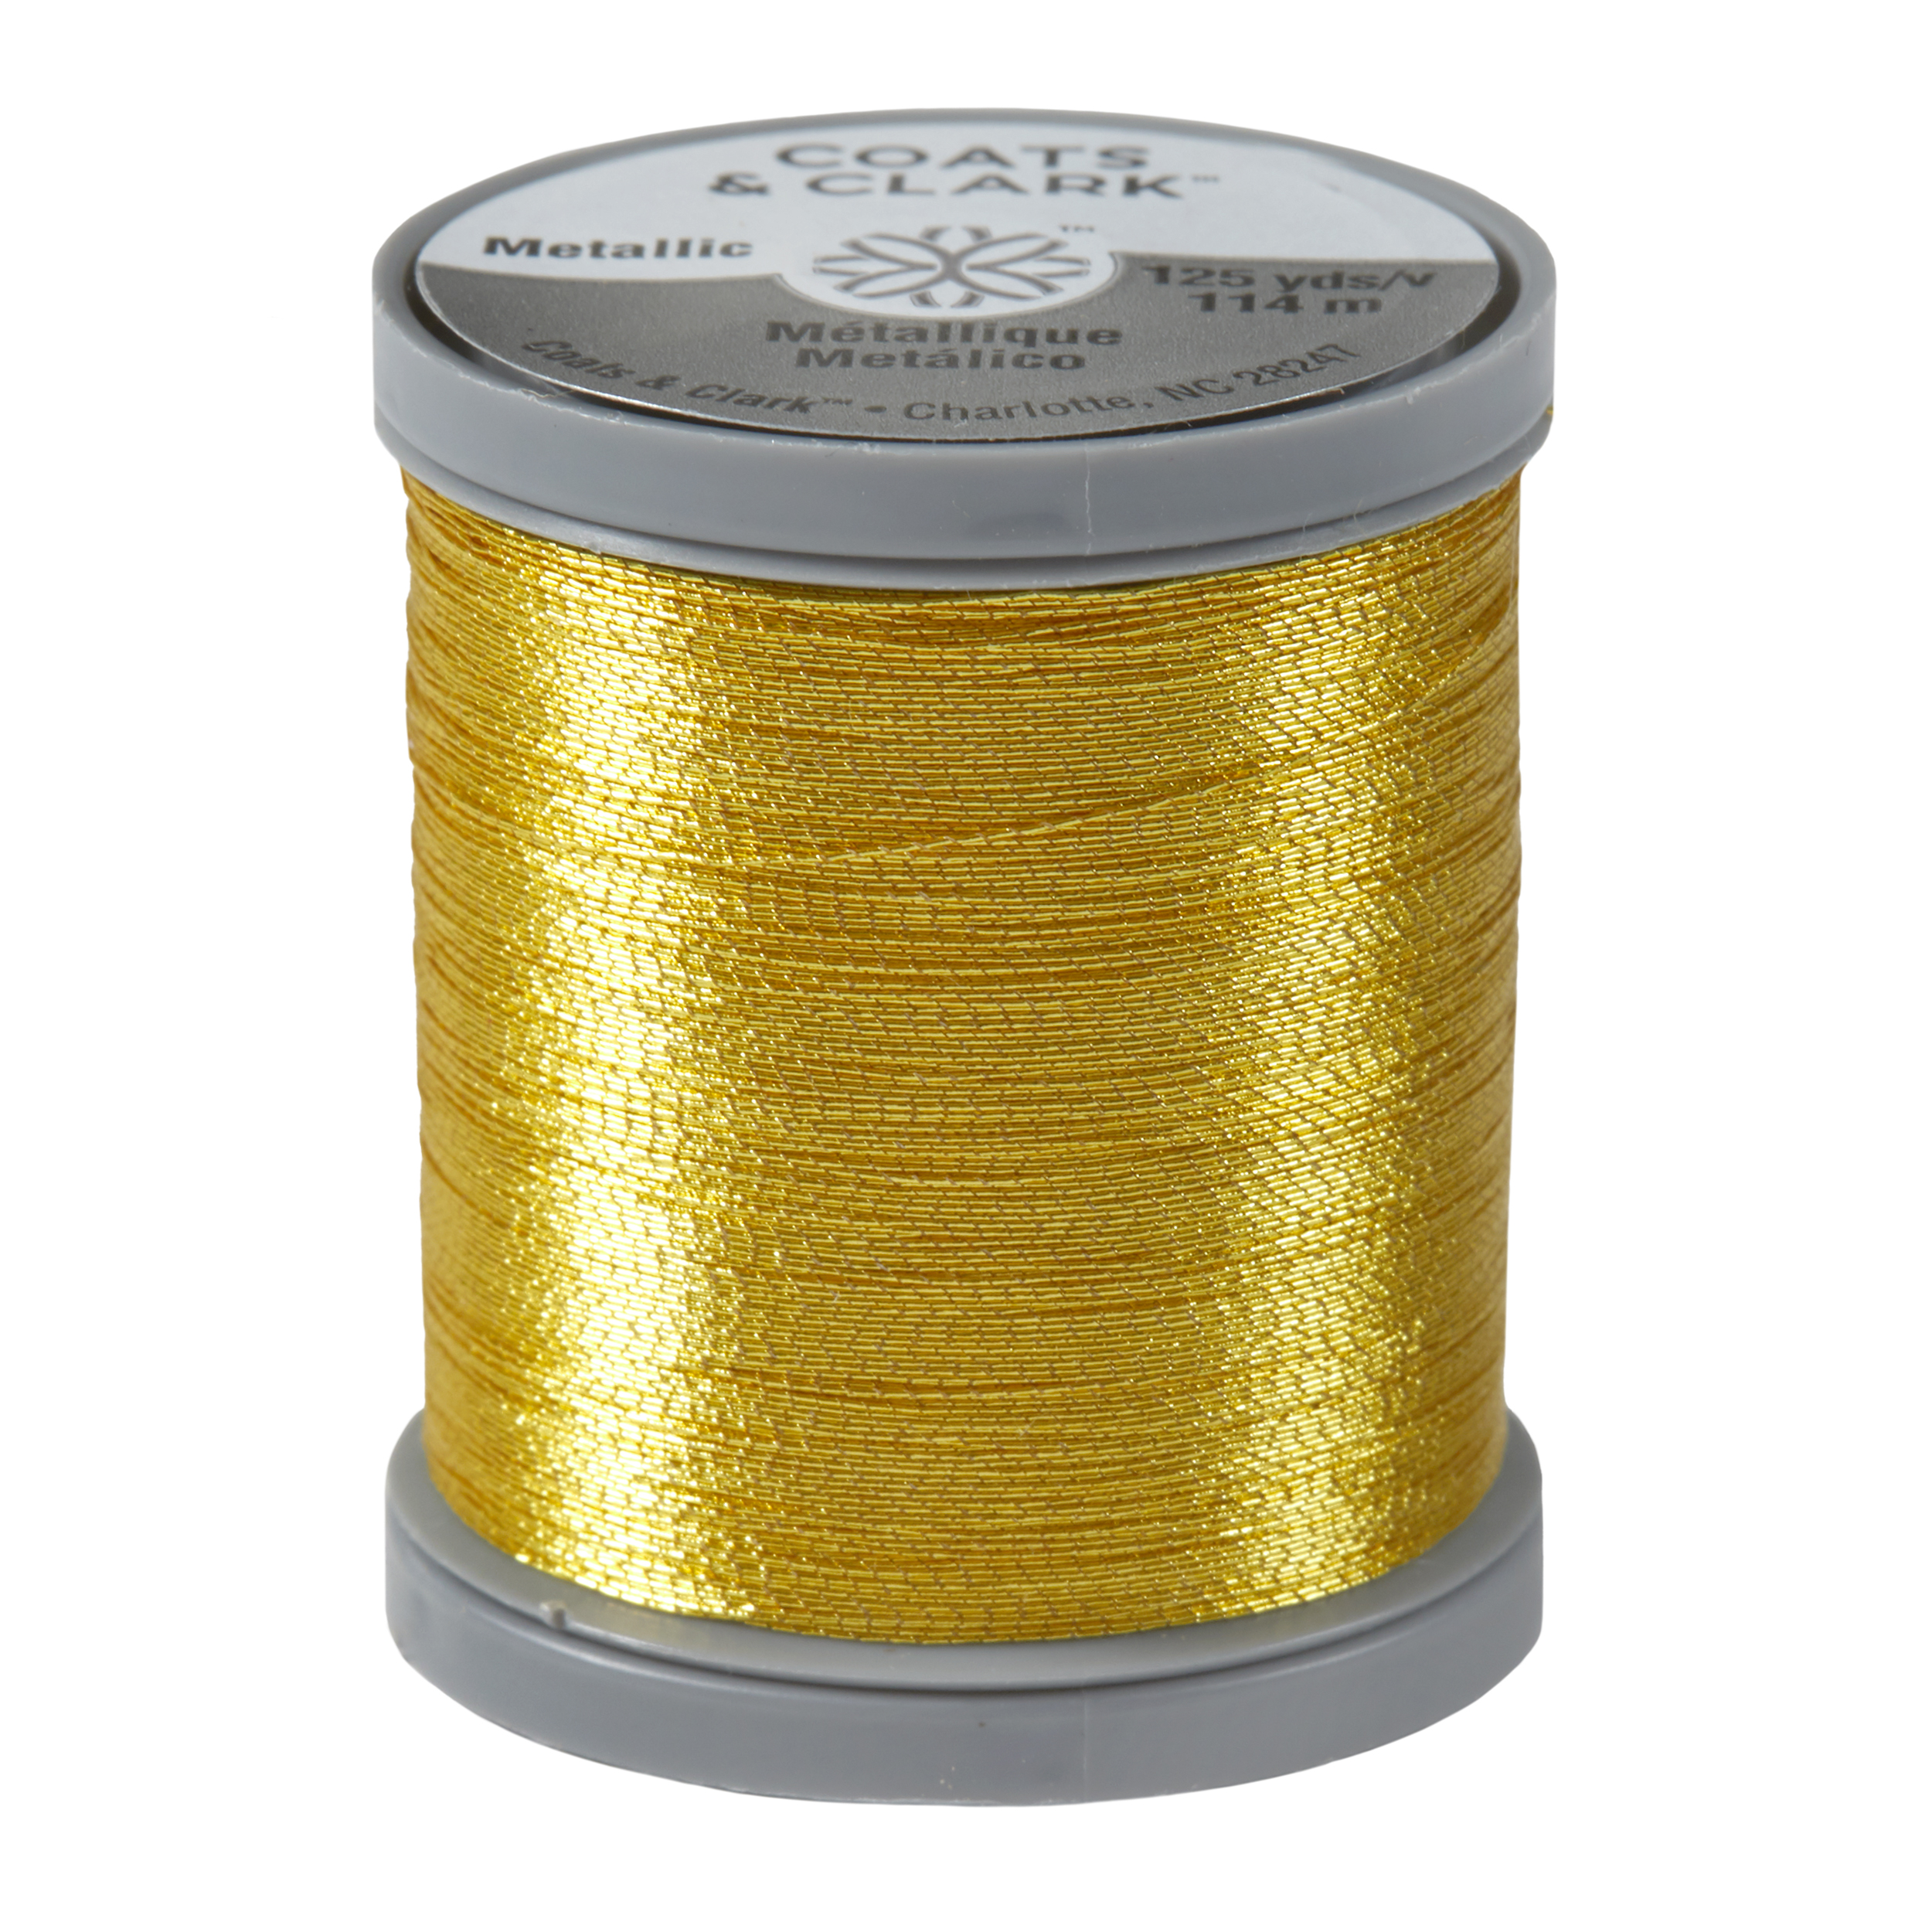 Picture of Coats  Clark Metallic Embroidery Thread 125 Yds Bright Gold